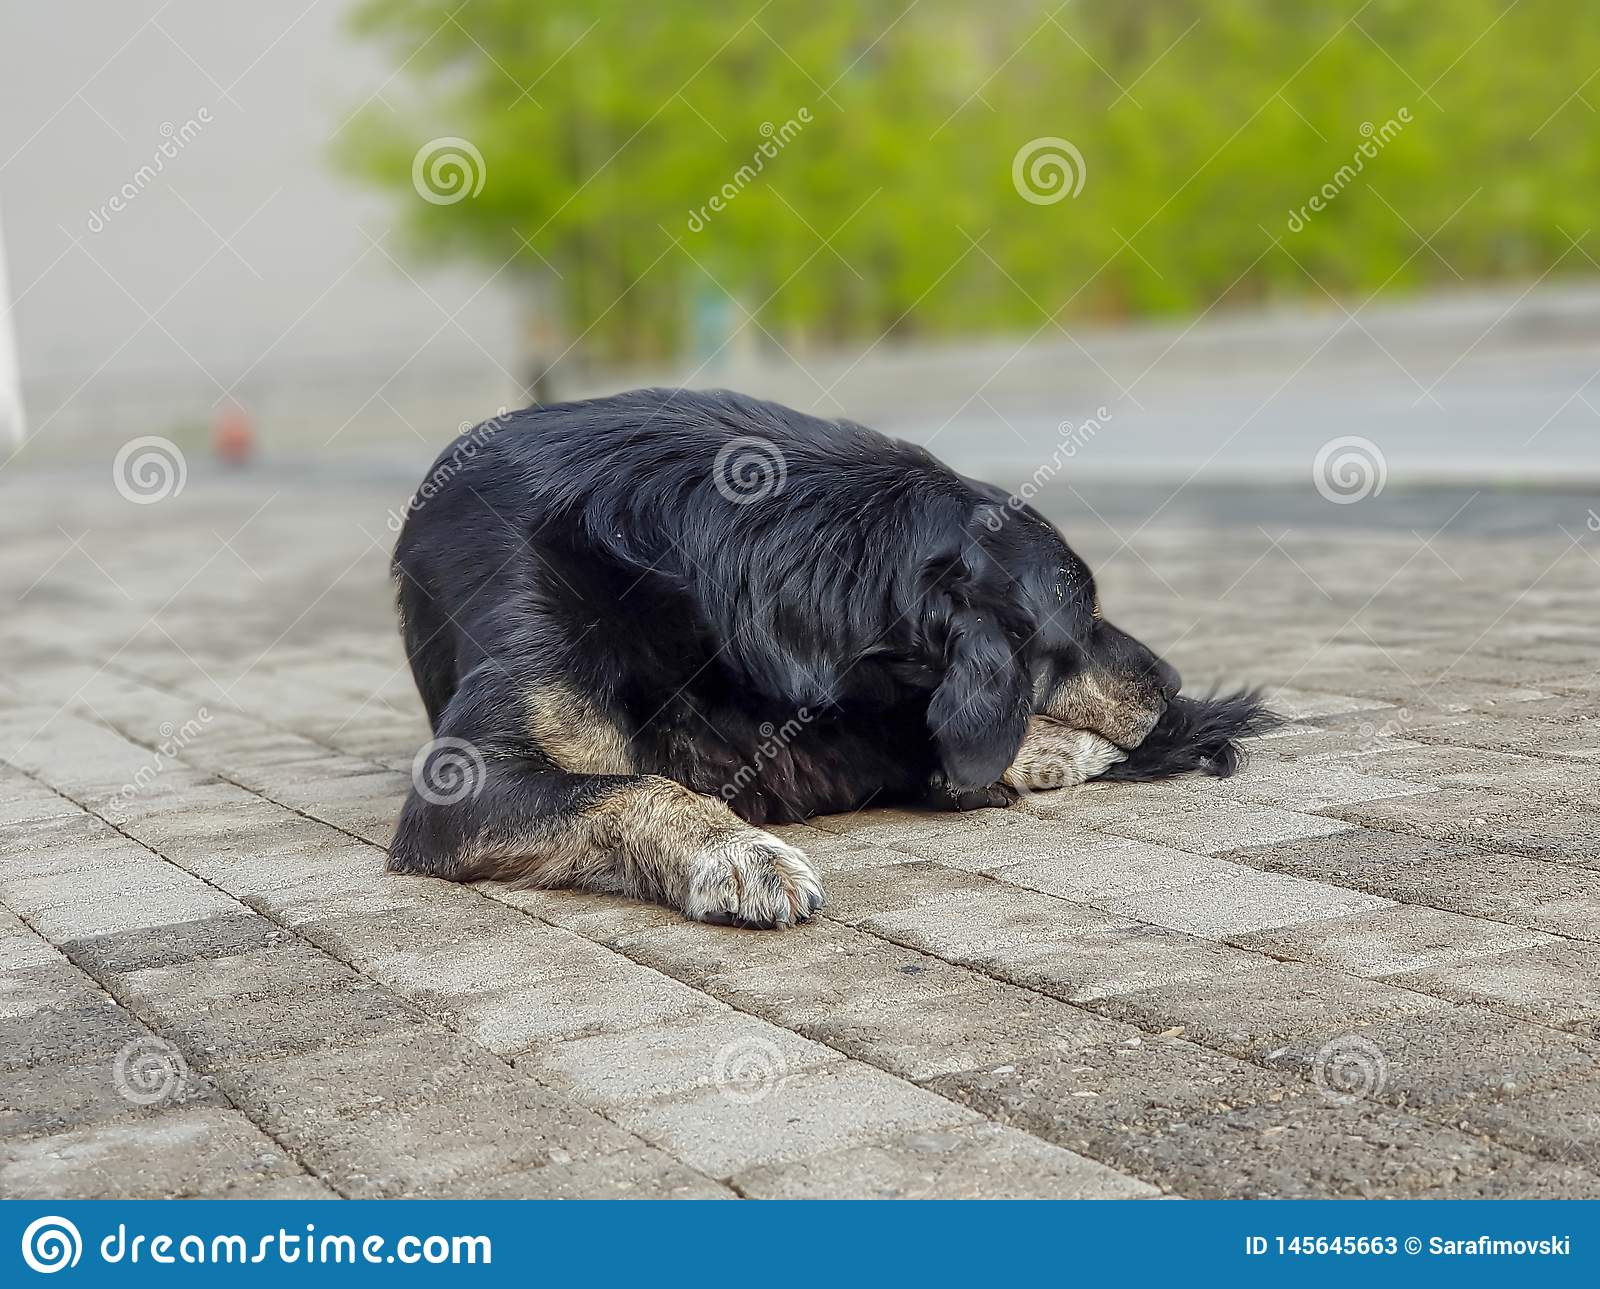 Sad and old homeless hungry black dog sleeping in the city suburbs.